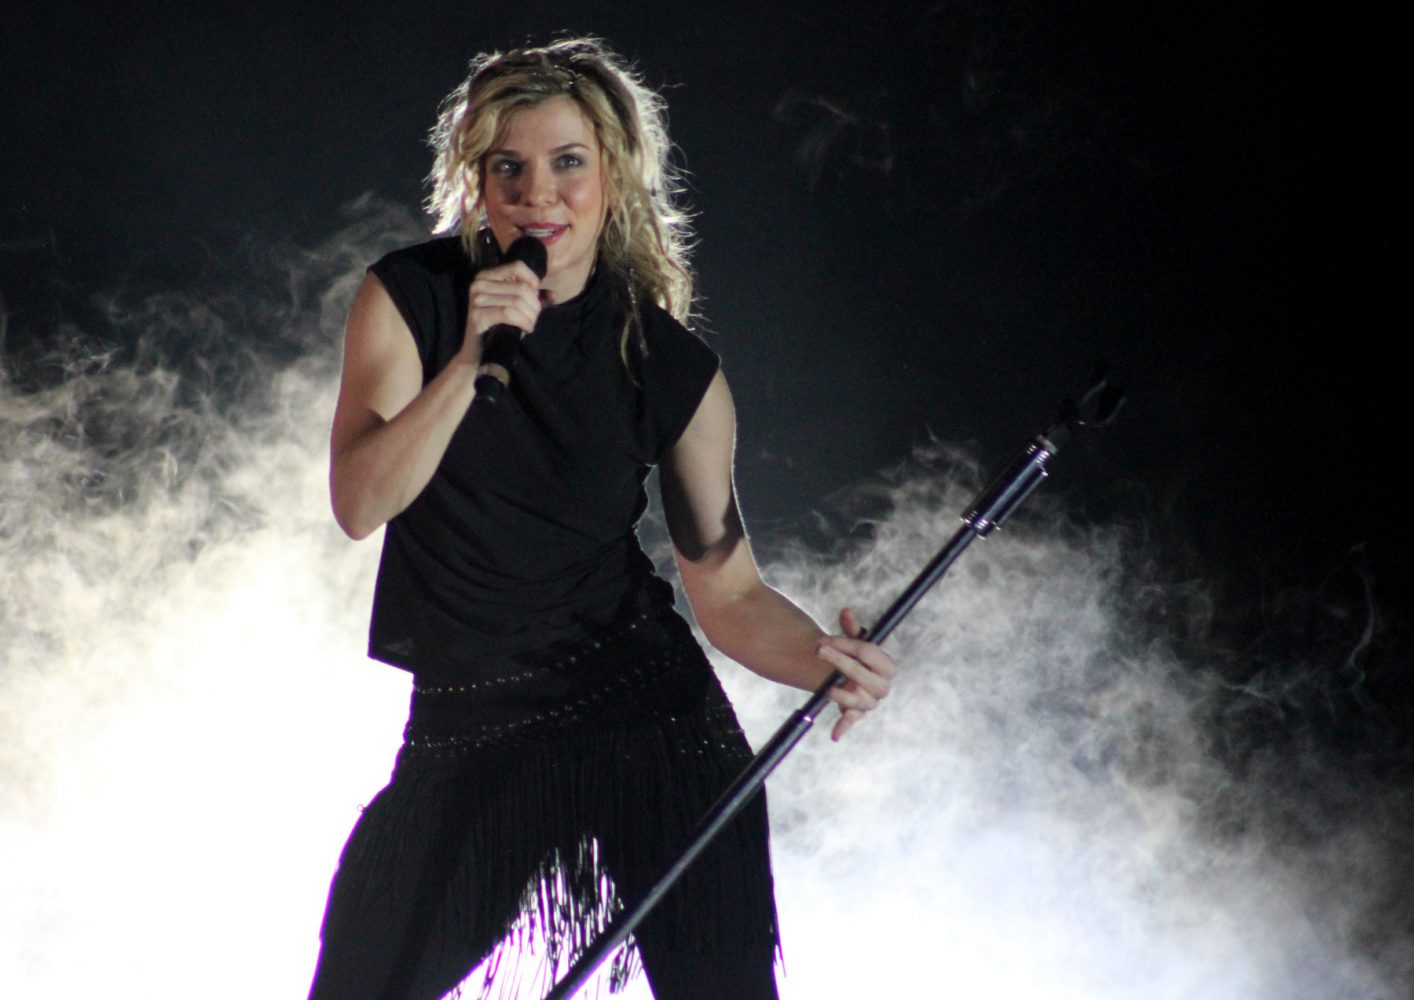 """Lead vocalist Kimberly Perry sings her hit sing, """"Better Dig Two,"""" as an encore performance at the Florida Strawberry Festival on Sunday night, Mar. 9, 2014."""